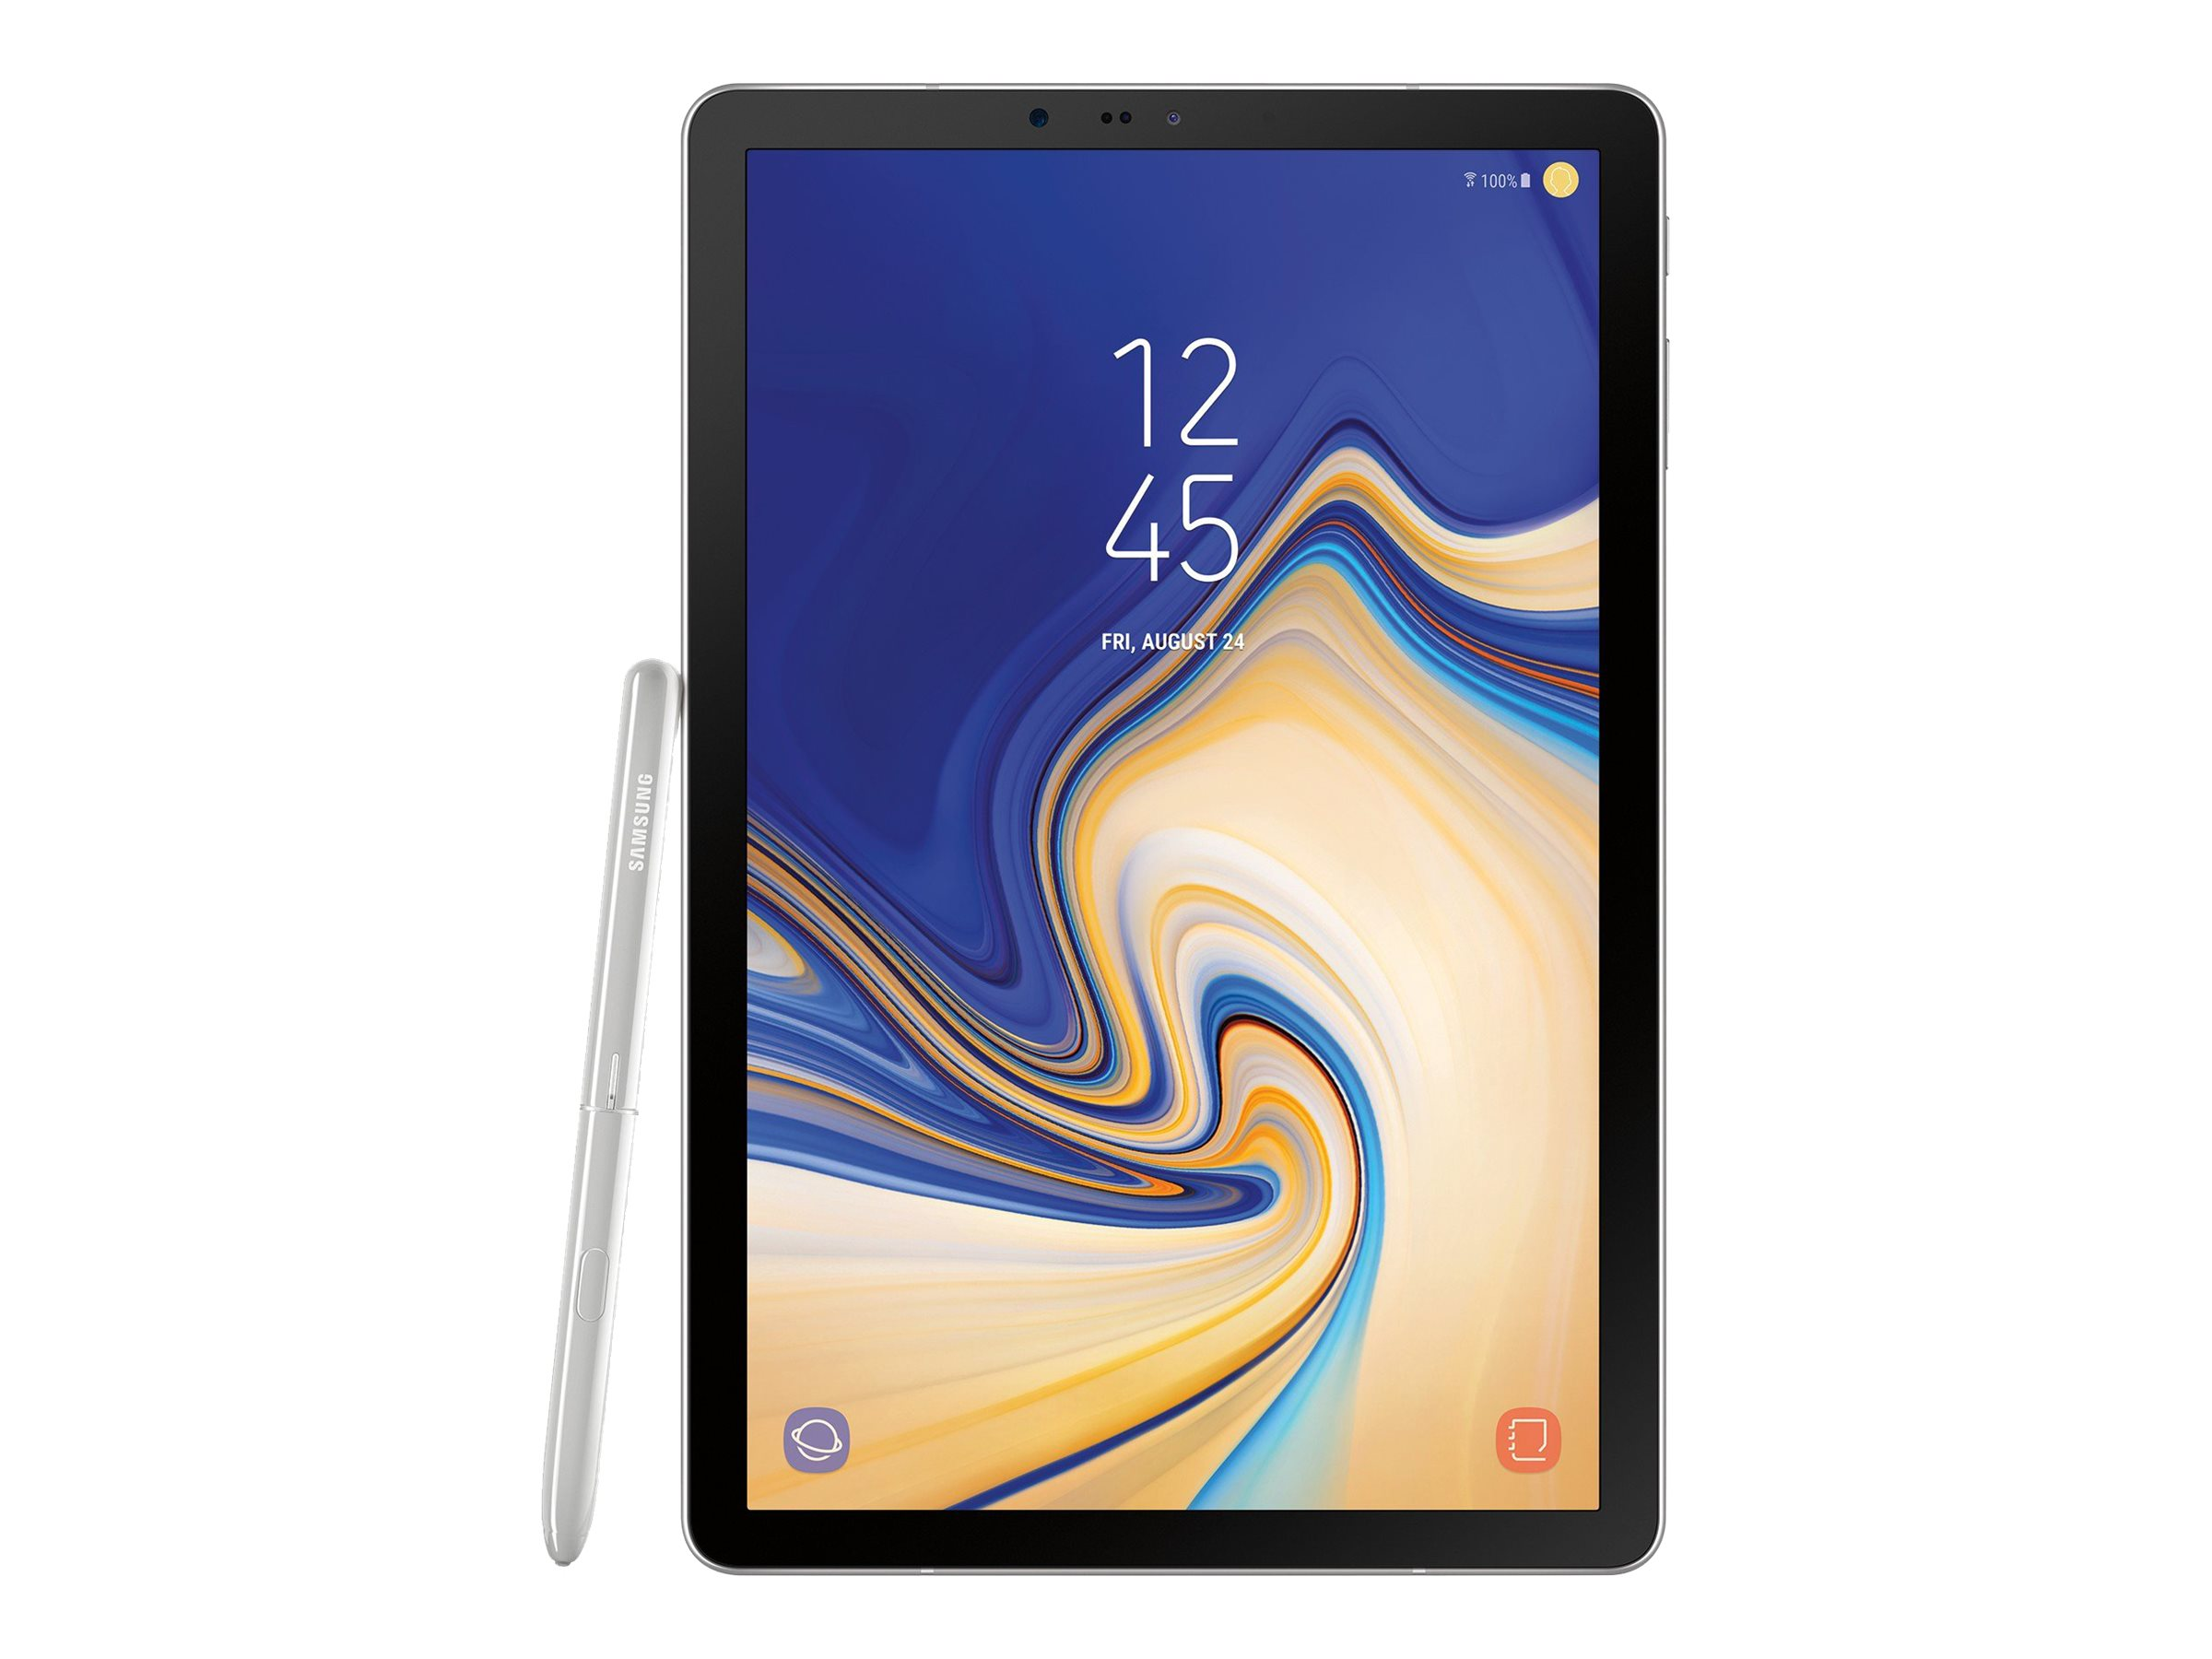 Samsung Galaxy Tab S4 - tablet - Android 8.0 (Oreo) - 256 GB - 10.5""